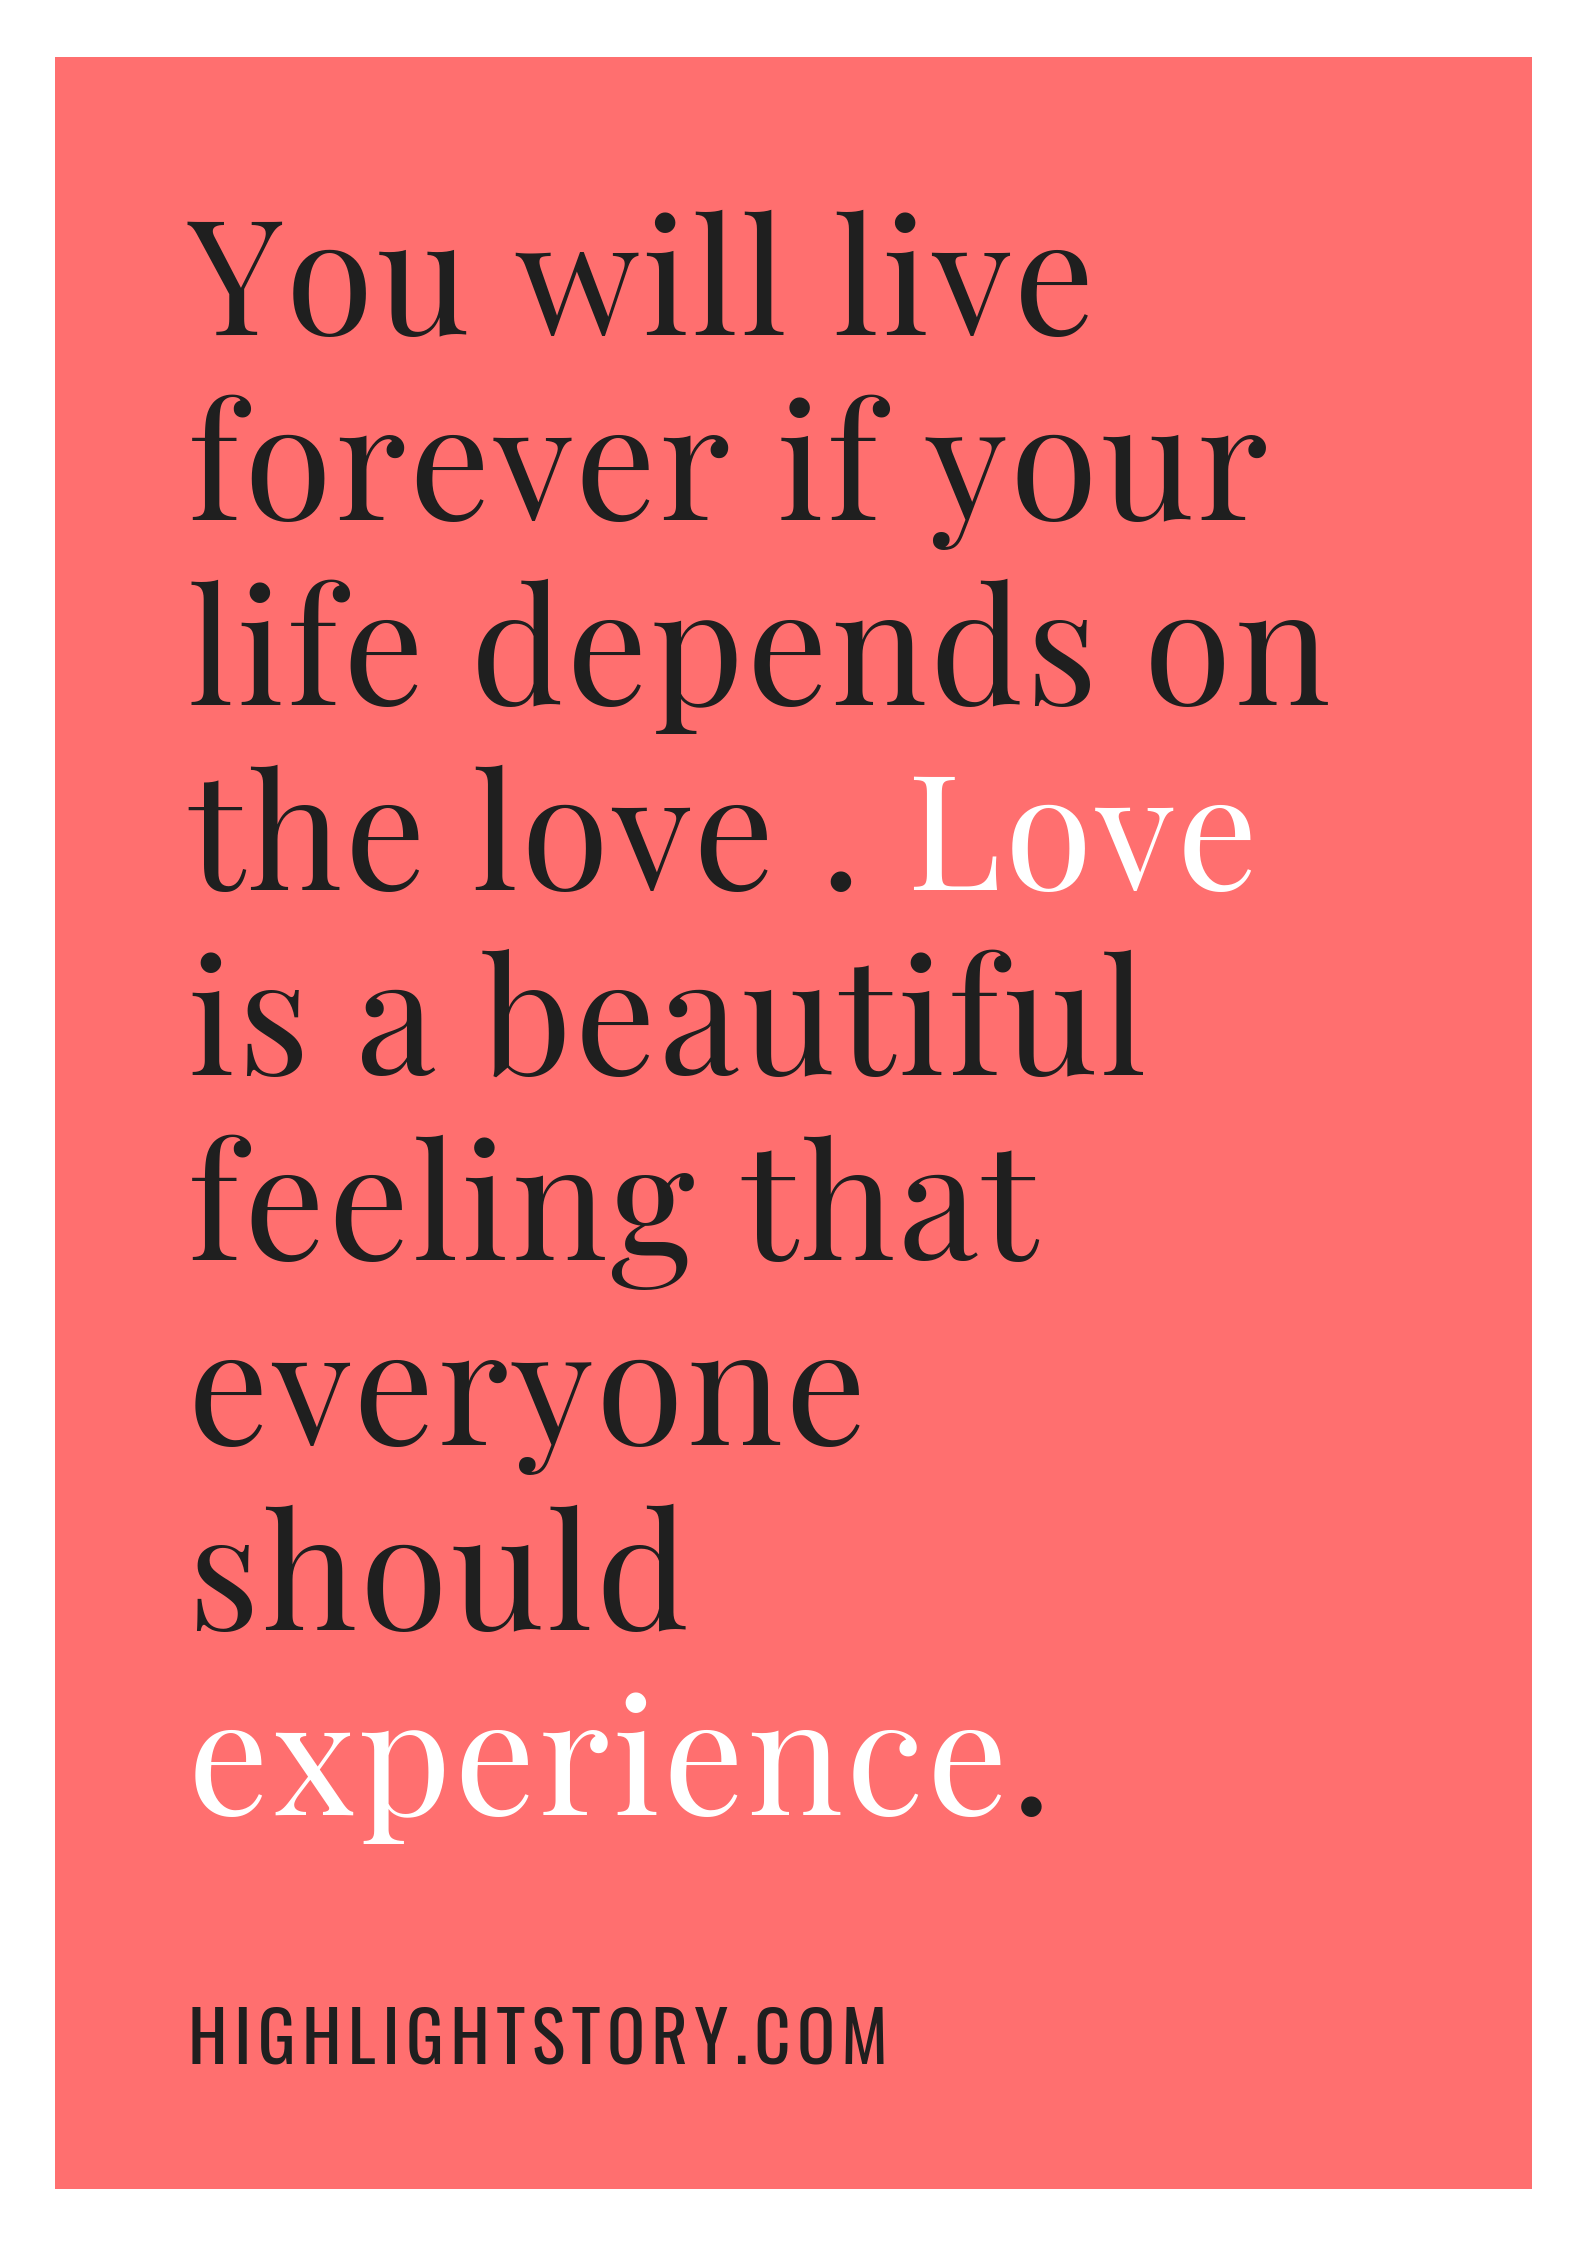 You will live forever if your life depends on the love . Love is a beautiful feeling that everyone should experience.